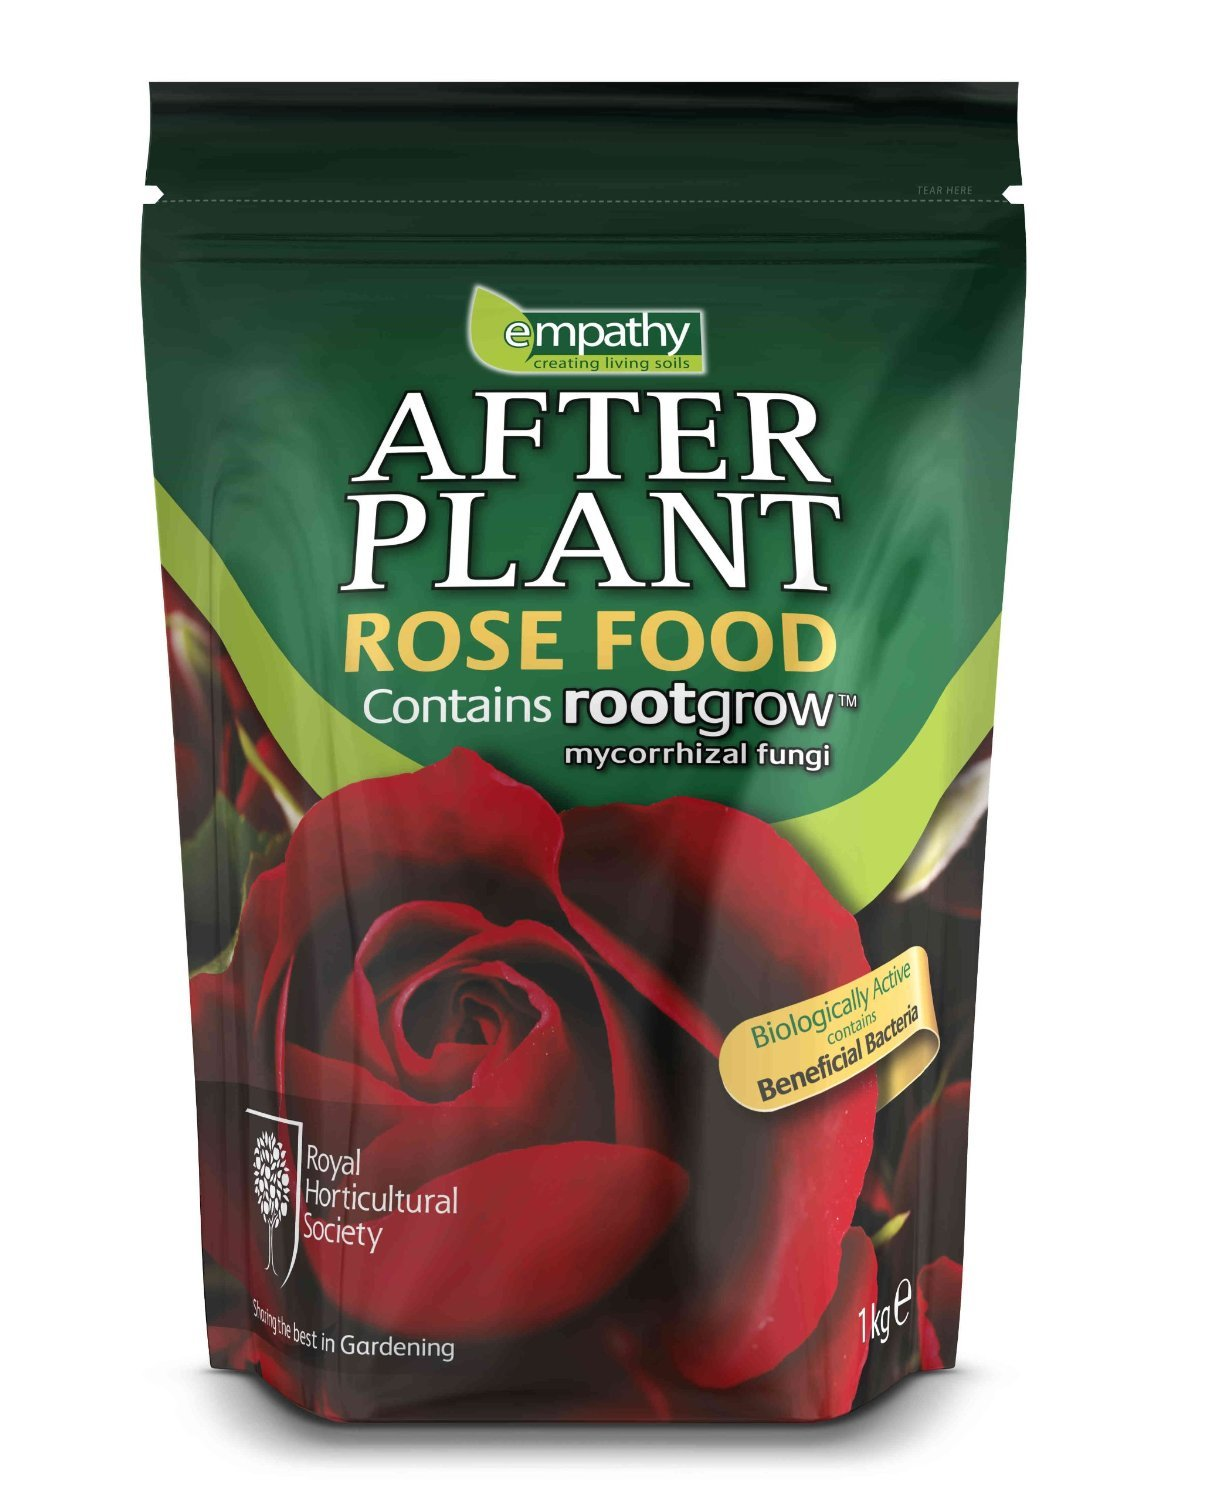 RHS EMPATHY AFTERPLANT ROSE FOOD WITH ROOTGROW MYCORRHIZAL FUNGI (10Kg)